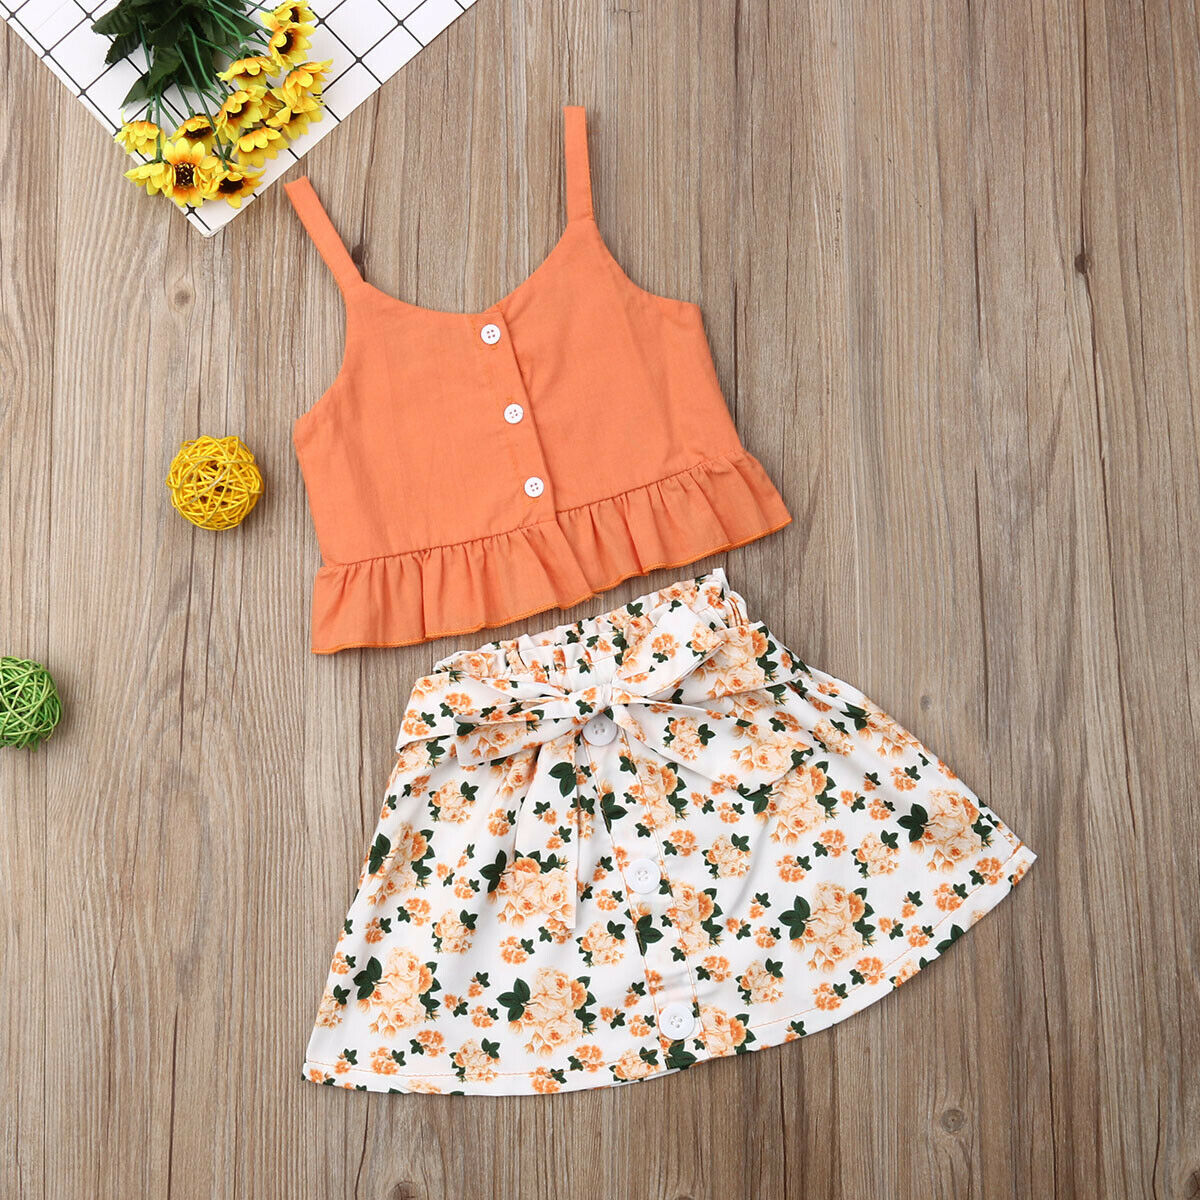 1 6T Toddler Kid Baby Girls Floral Outfits Solid Button Ruffle Tank Sling Tops Floral Bandage Skirt Sleeveless Summer 2Pcs Set in Clothing Sets from Mother Kids